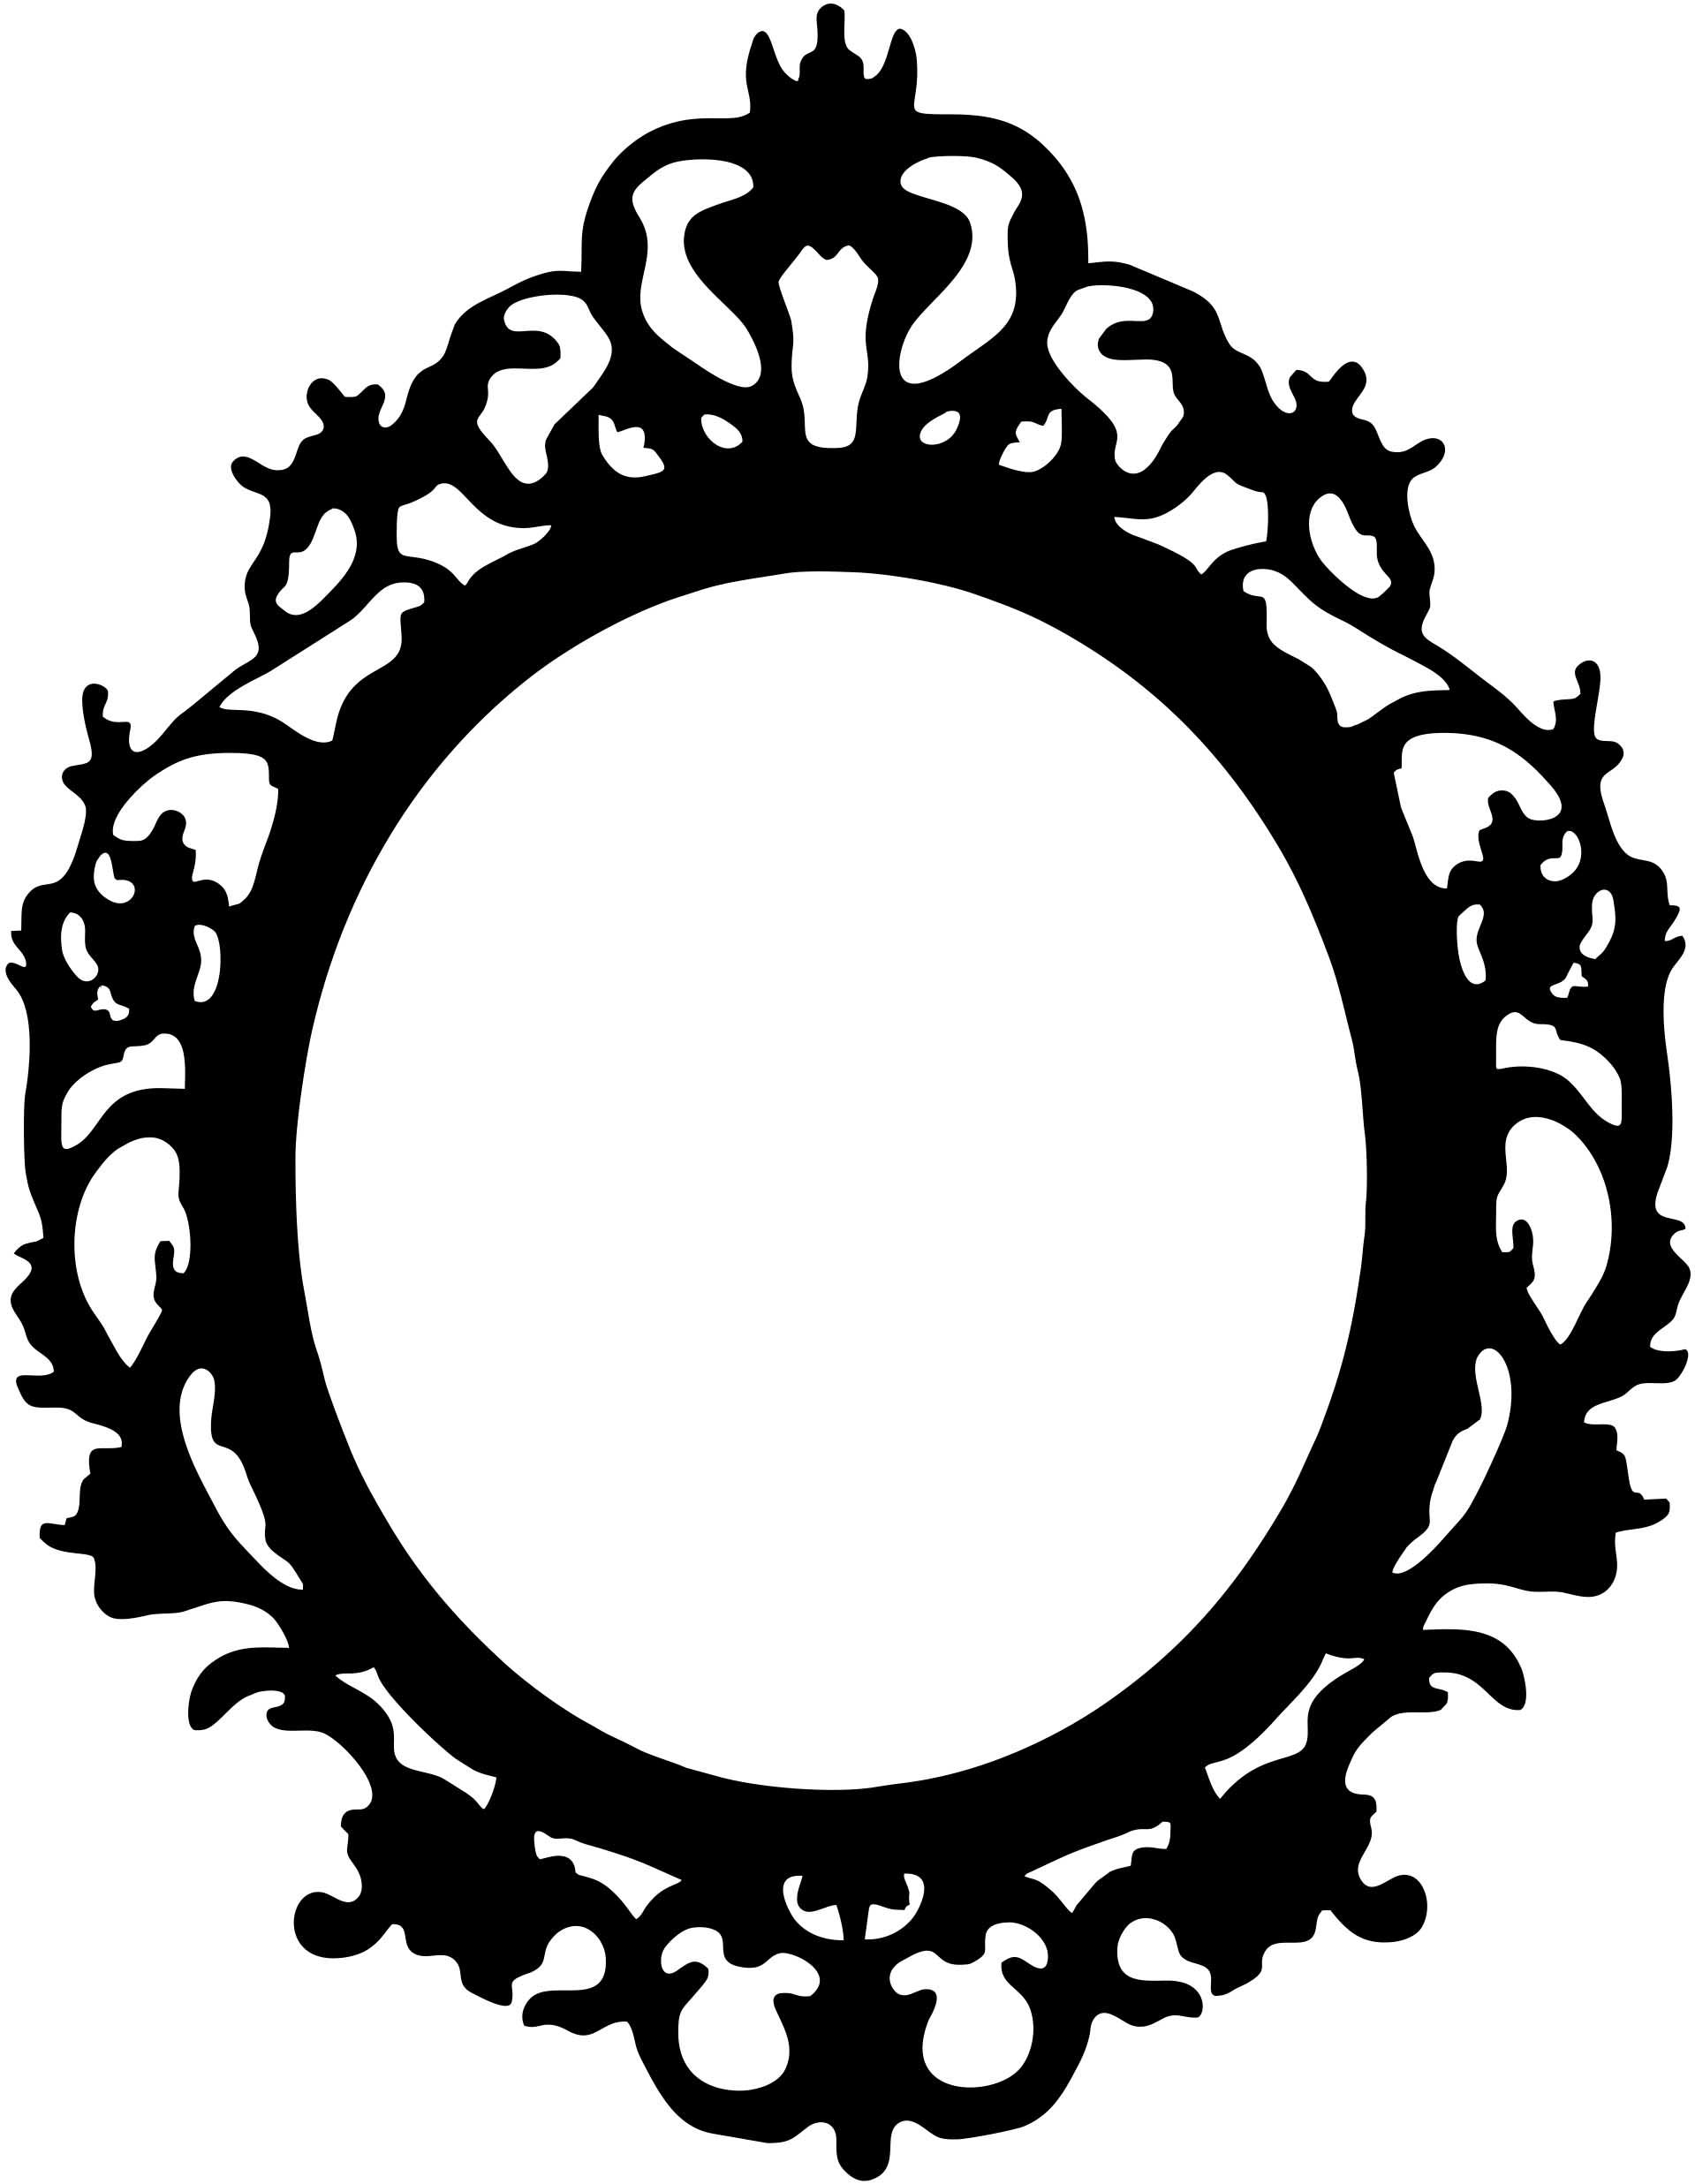 Black and white oval shaped mirror clipart graphic freeuse stock picture frame stencils | Displaying 19> Images For - Oval Antique ... graphic freeuse stock